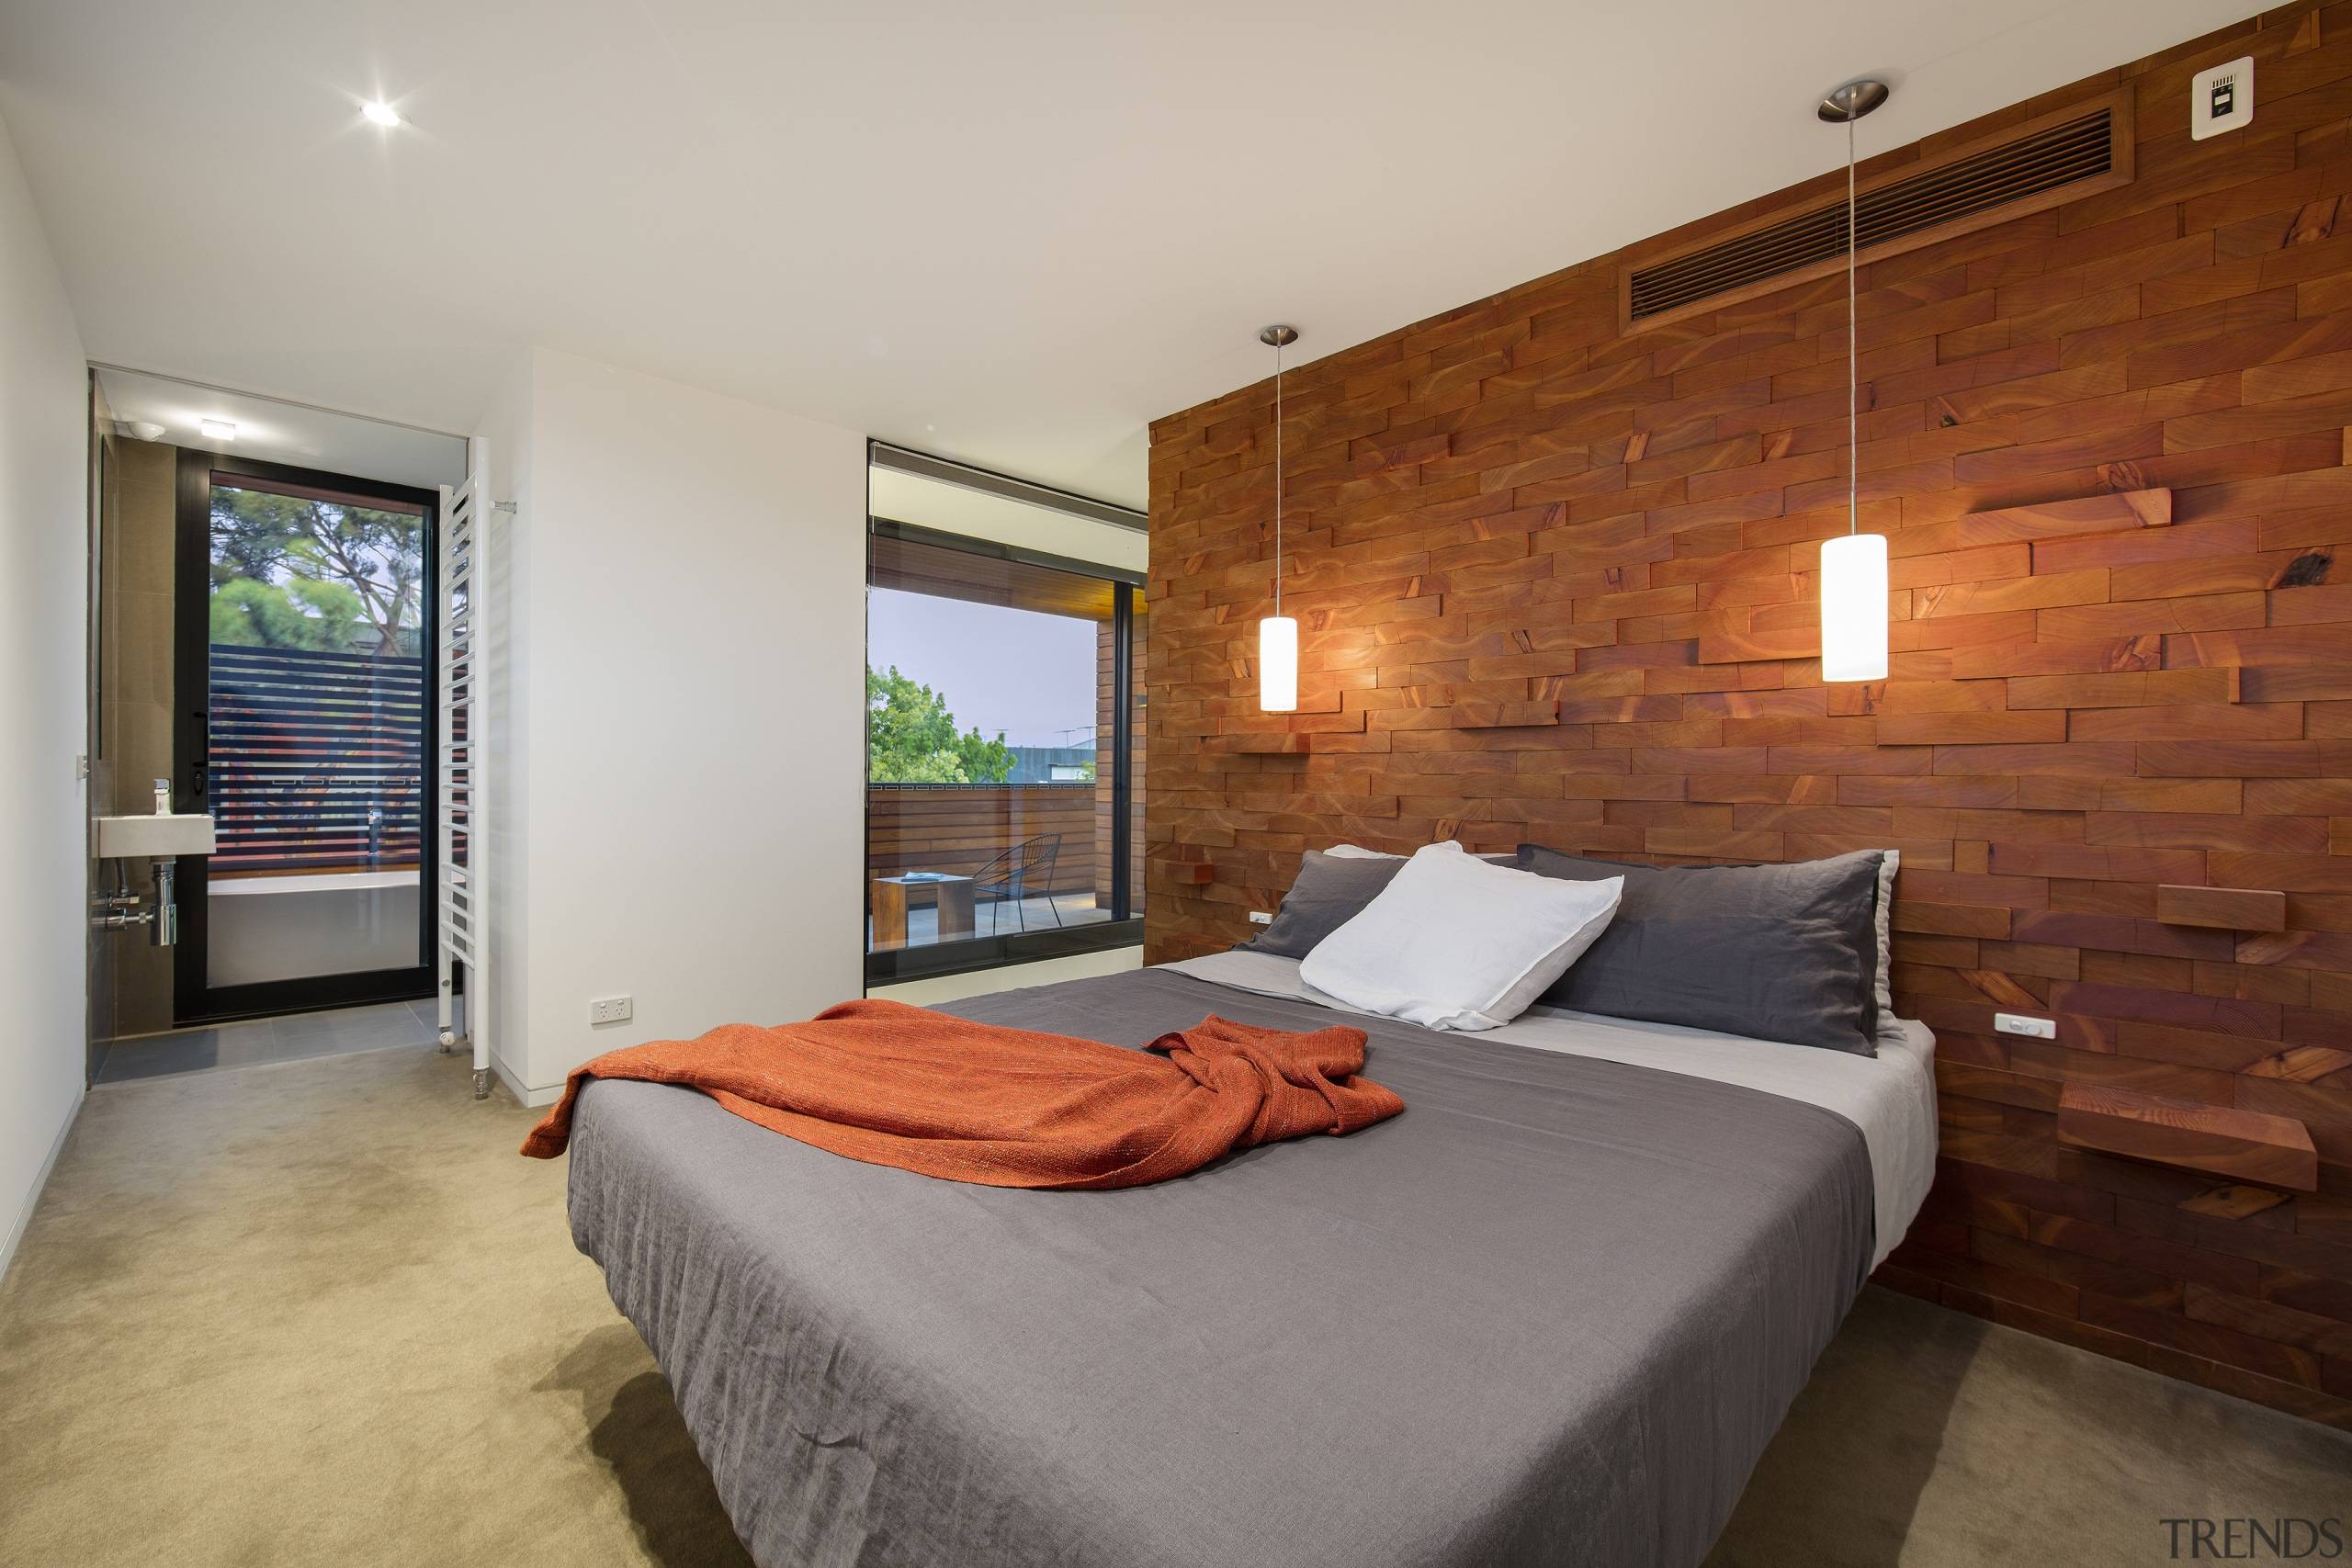 A bespoke miniature modern home was achieved at bed frame, bedroom, ceiling, estate, floor, interior design, property, real estate, room, suite, wall, wood, gray, brown